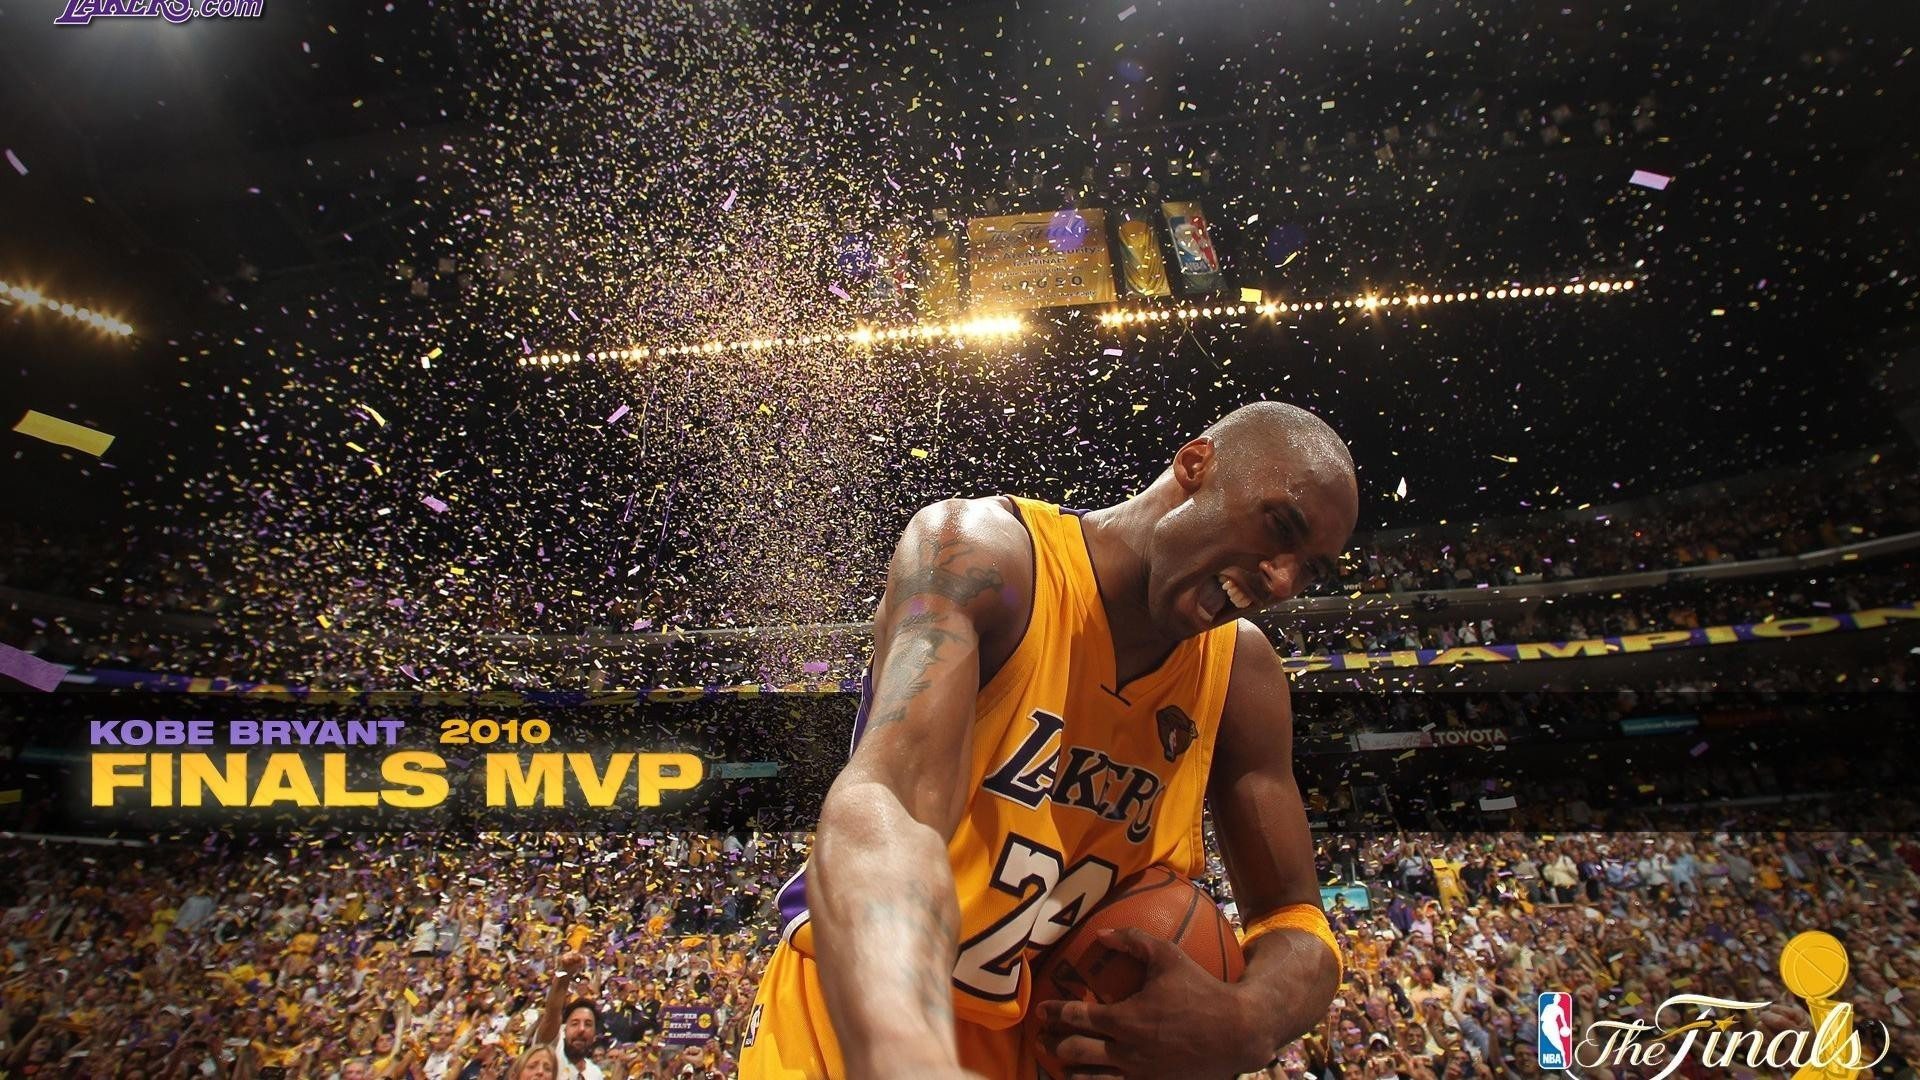 Kobe Bryant Los Angeles Lakers Athletes Celebrity Championship Wallpaper